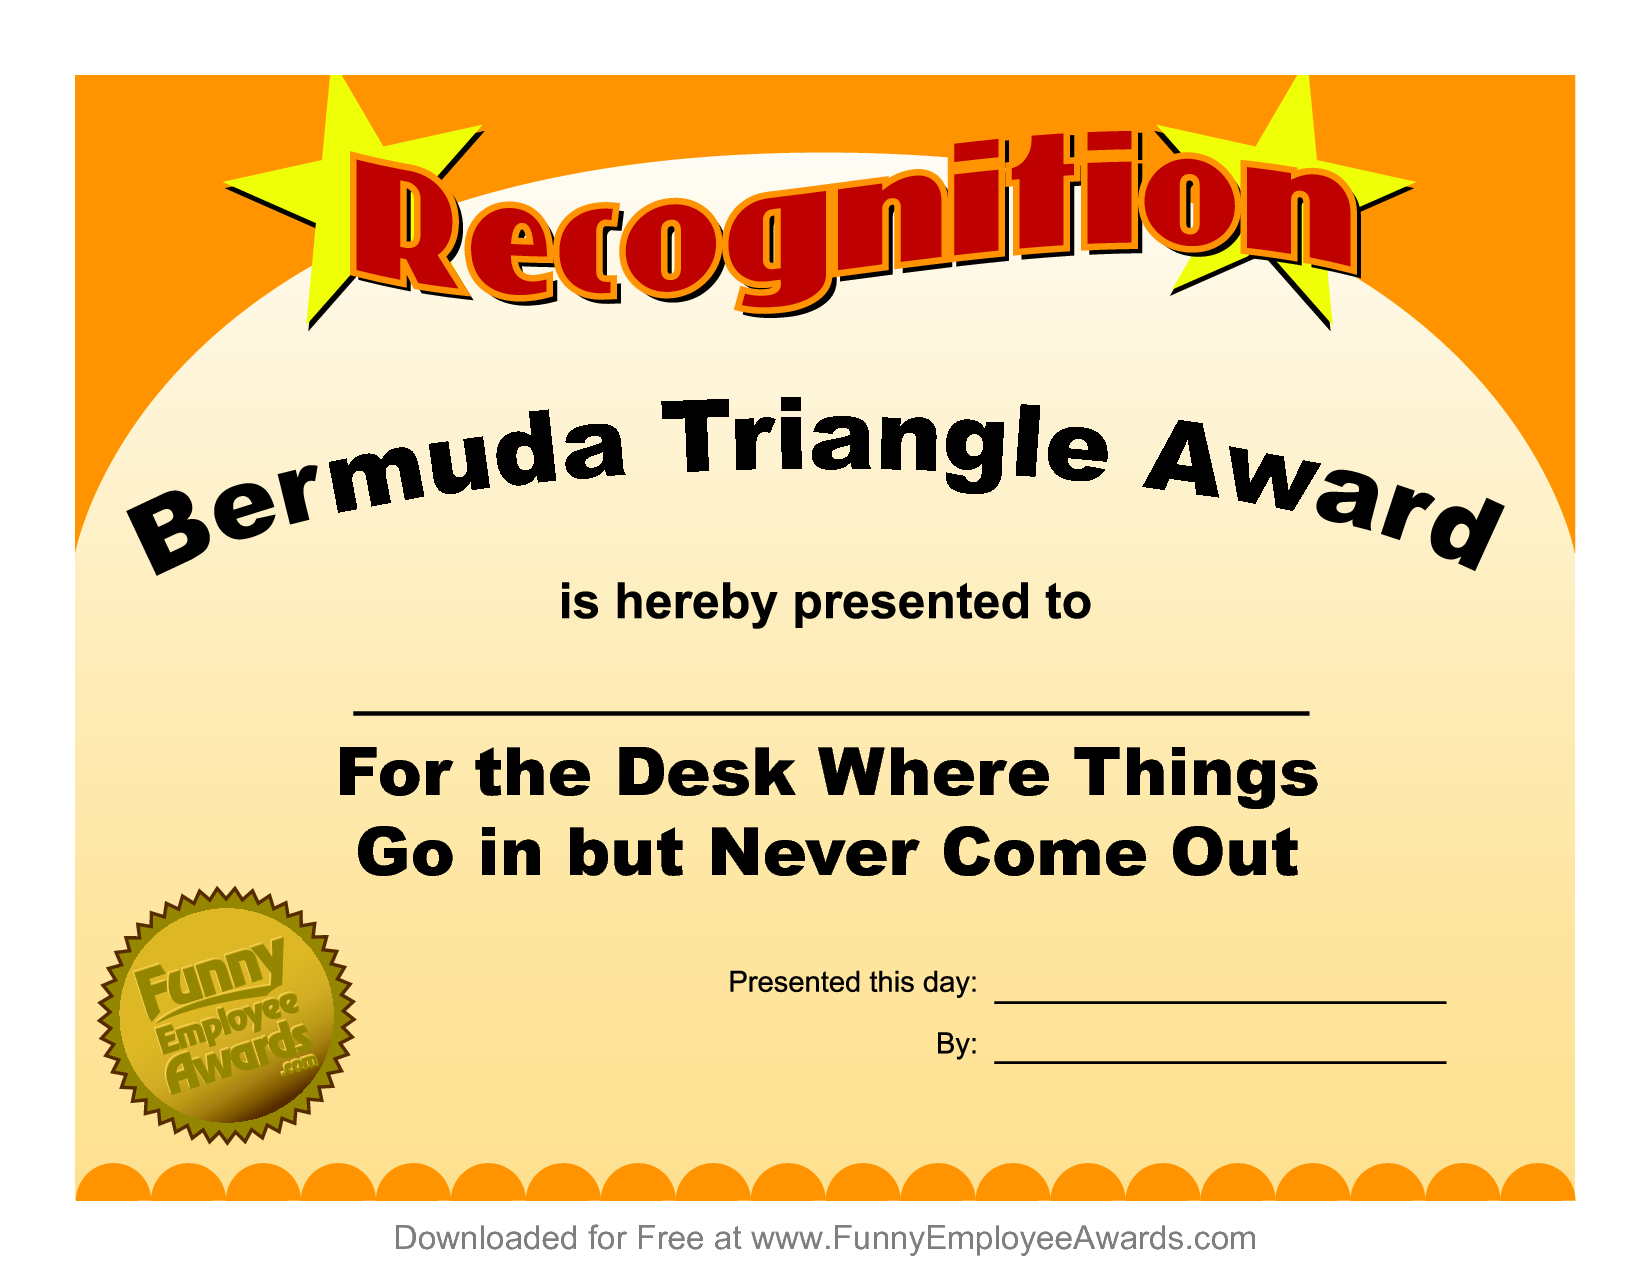 Funny Certificate Template ] - Funny Award Certificate Within Free Printable Funny Certificate Templates